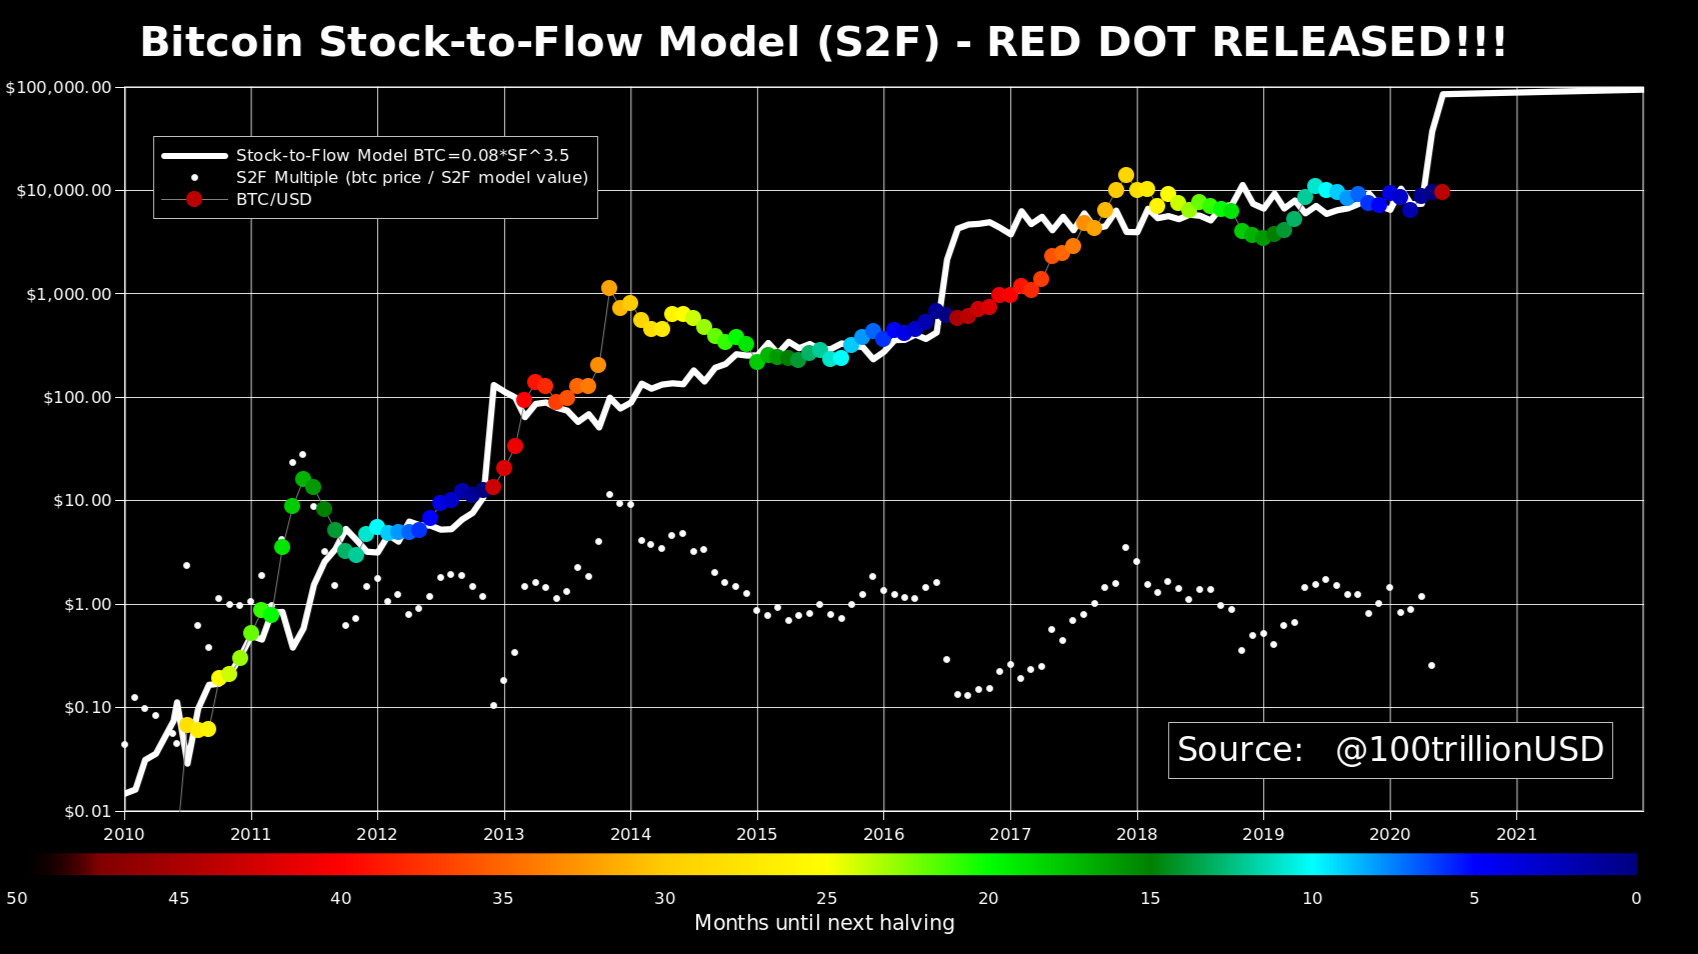 Do you think Bitcoin Stock-to-Flow model is right?